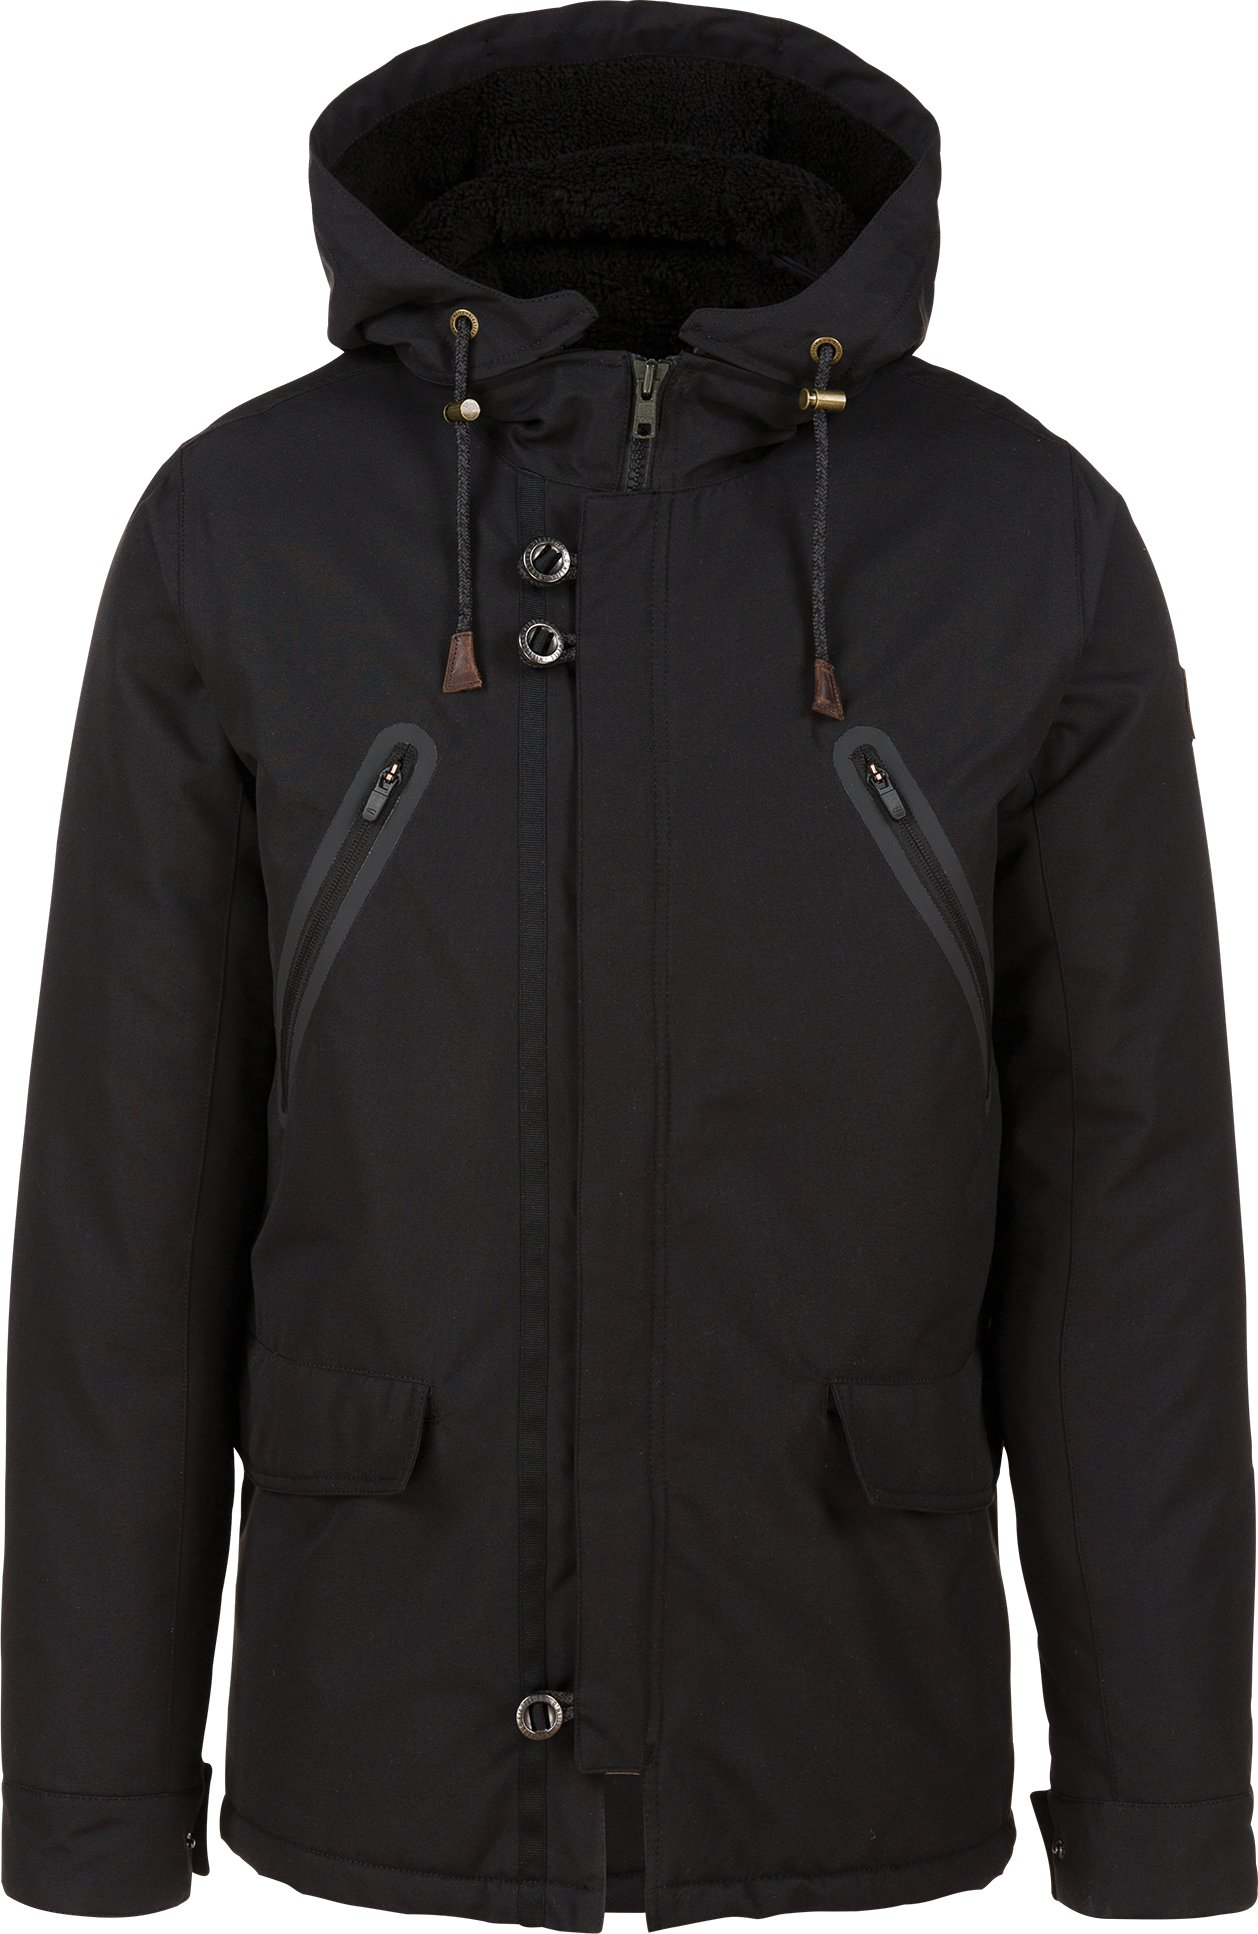 O'Neill Men's Fine Tune Jacket, X-Large, Black Out